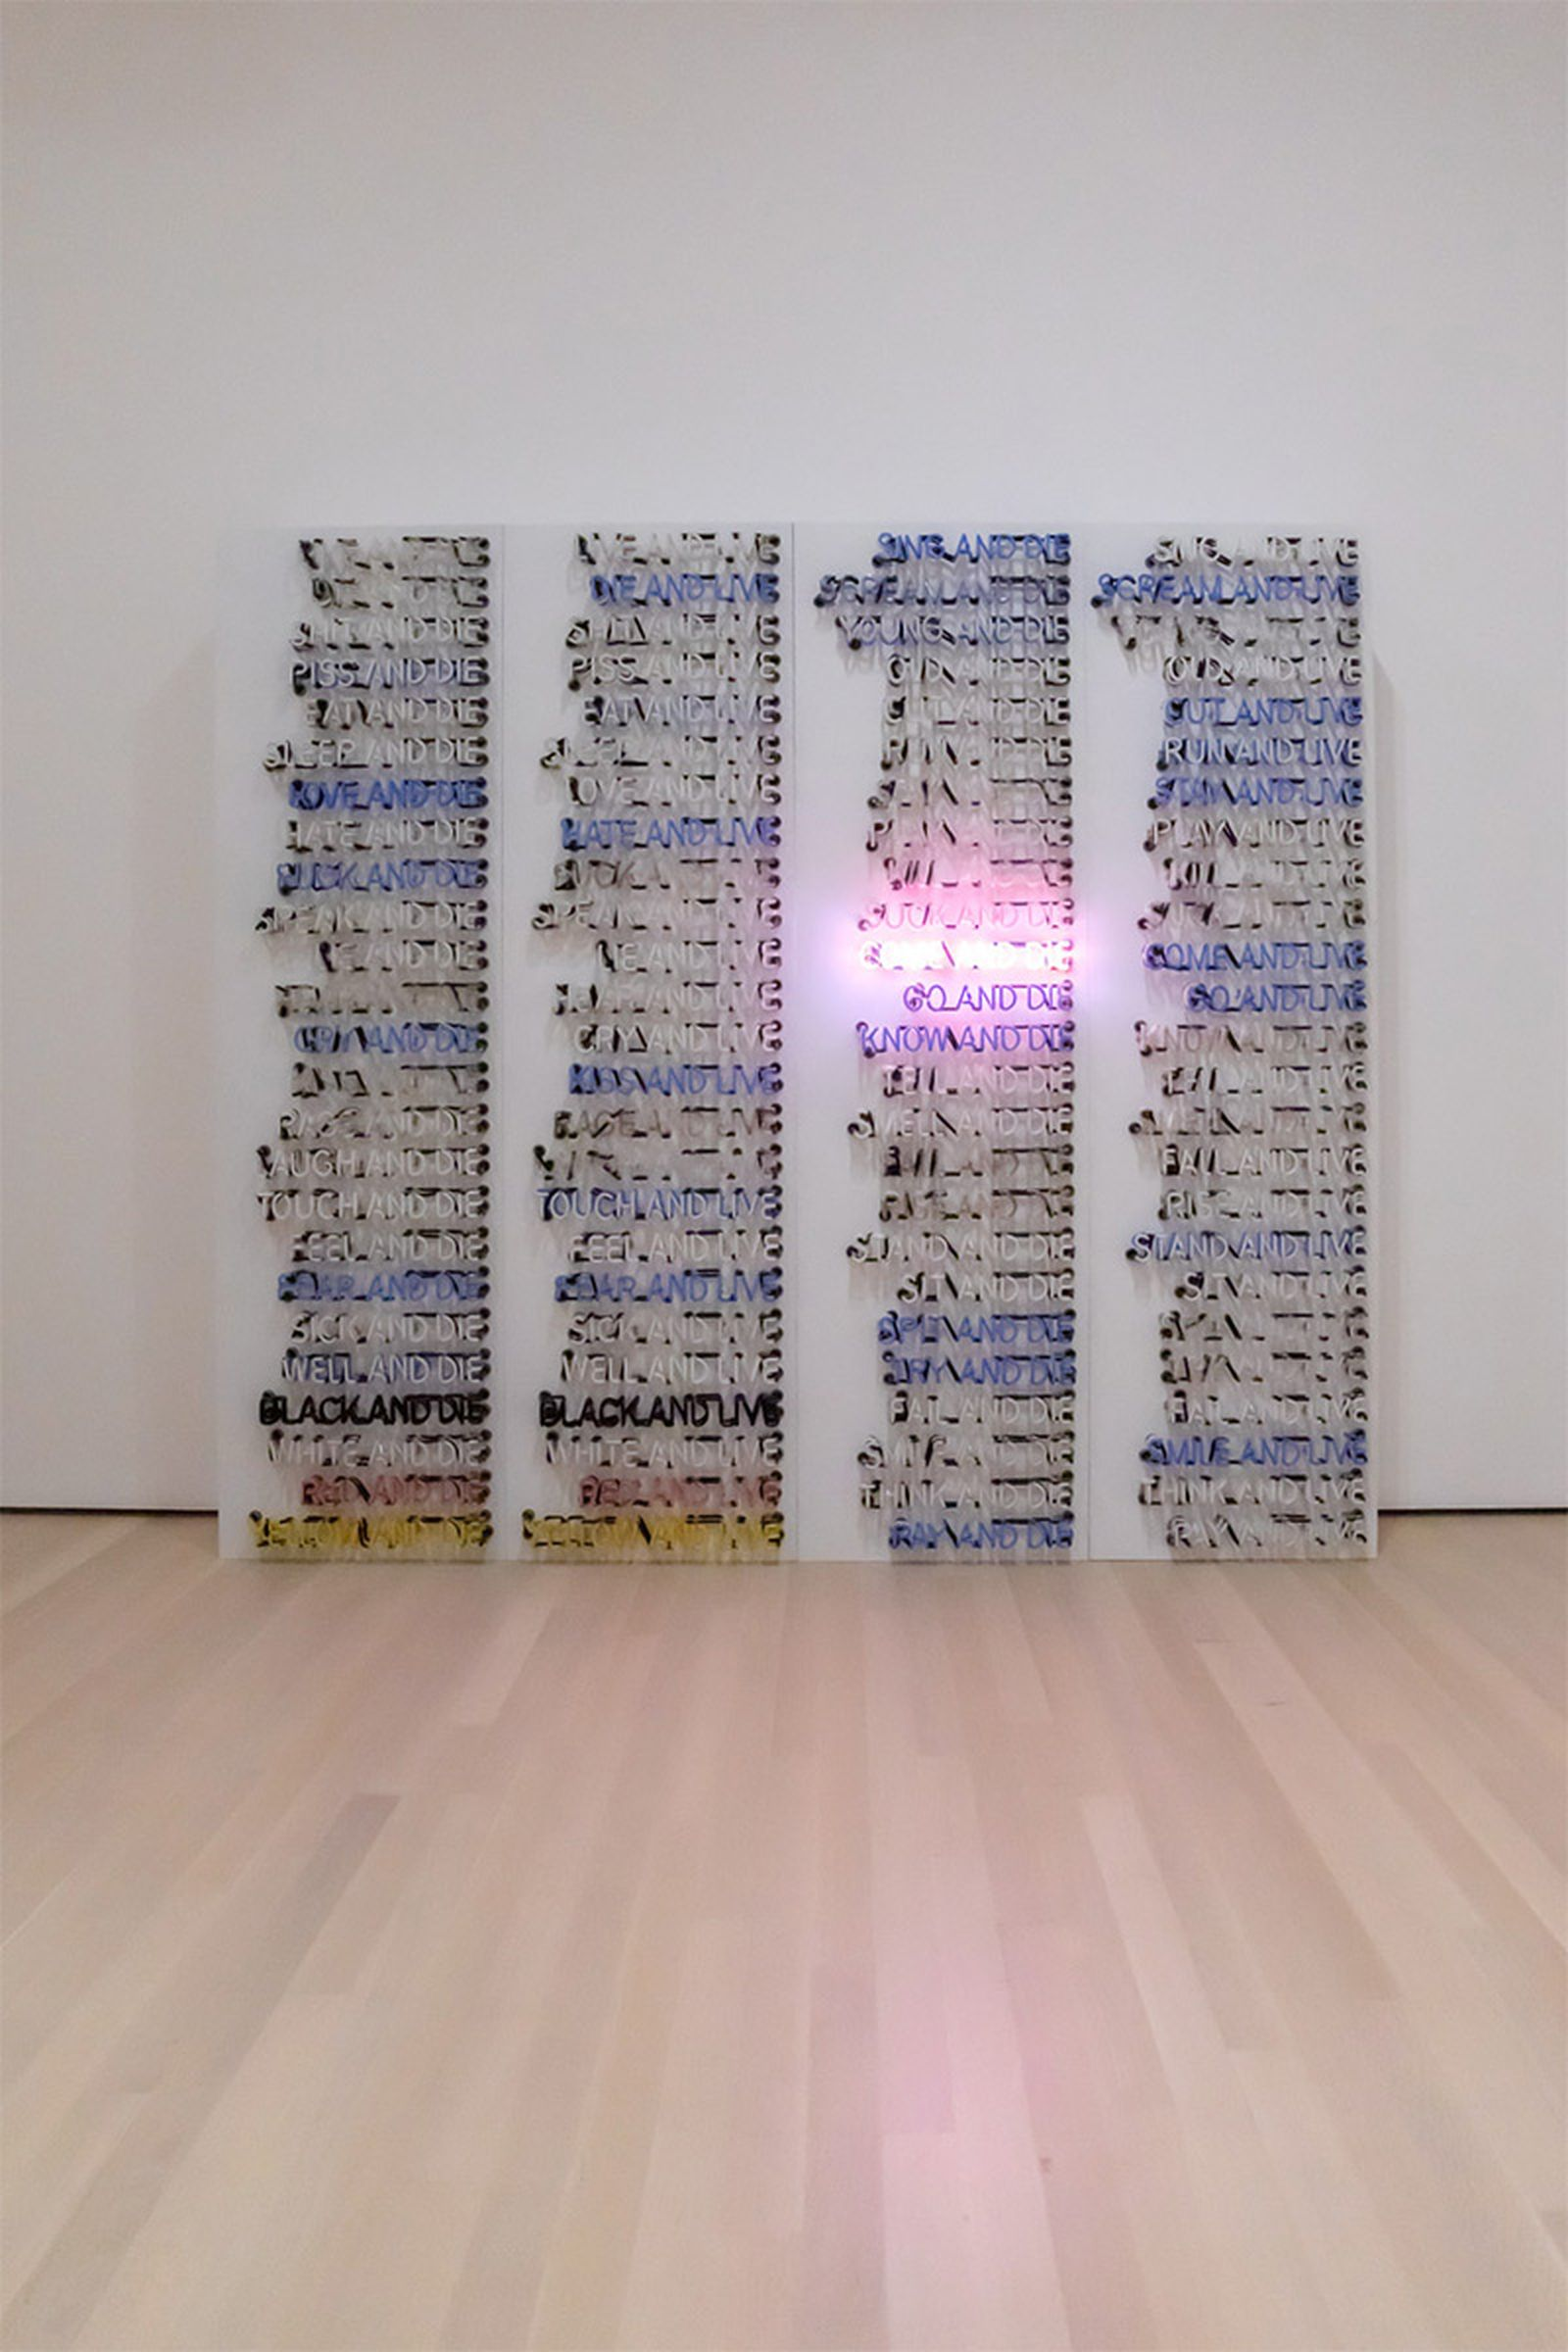 bruce nauman disappearing acts exhibition moma new york city